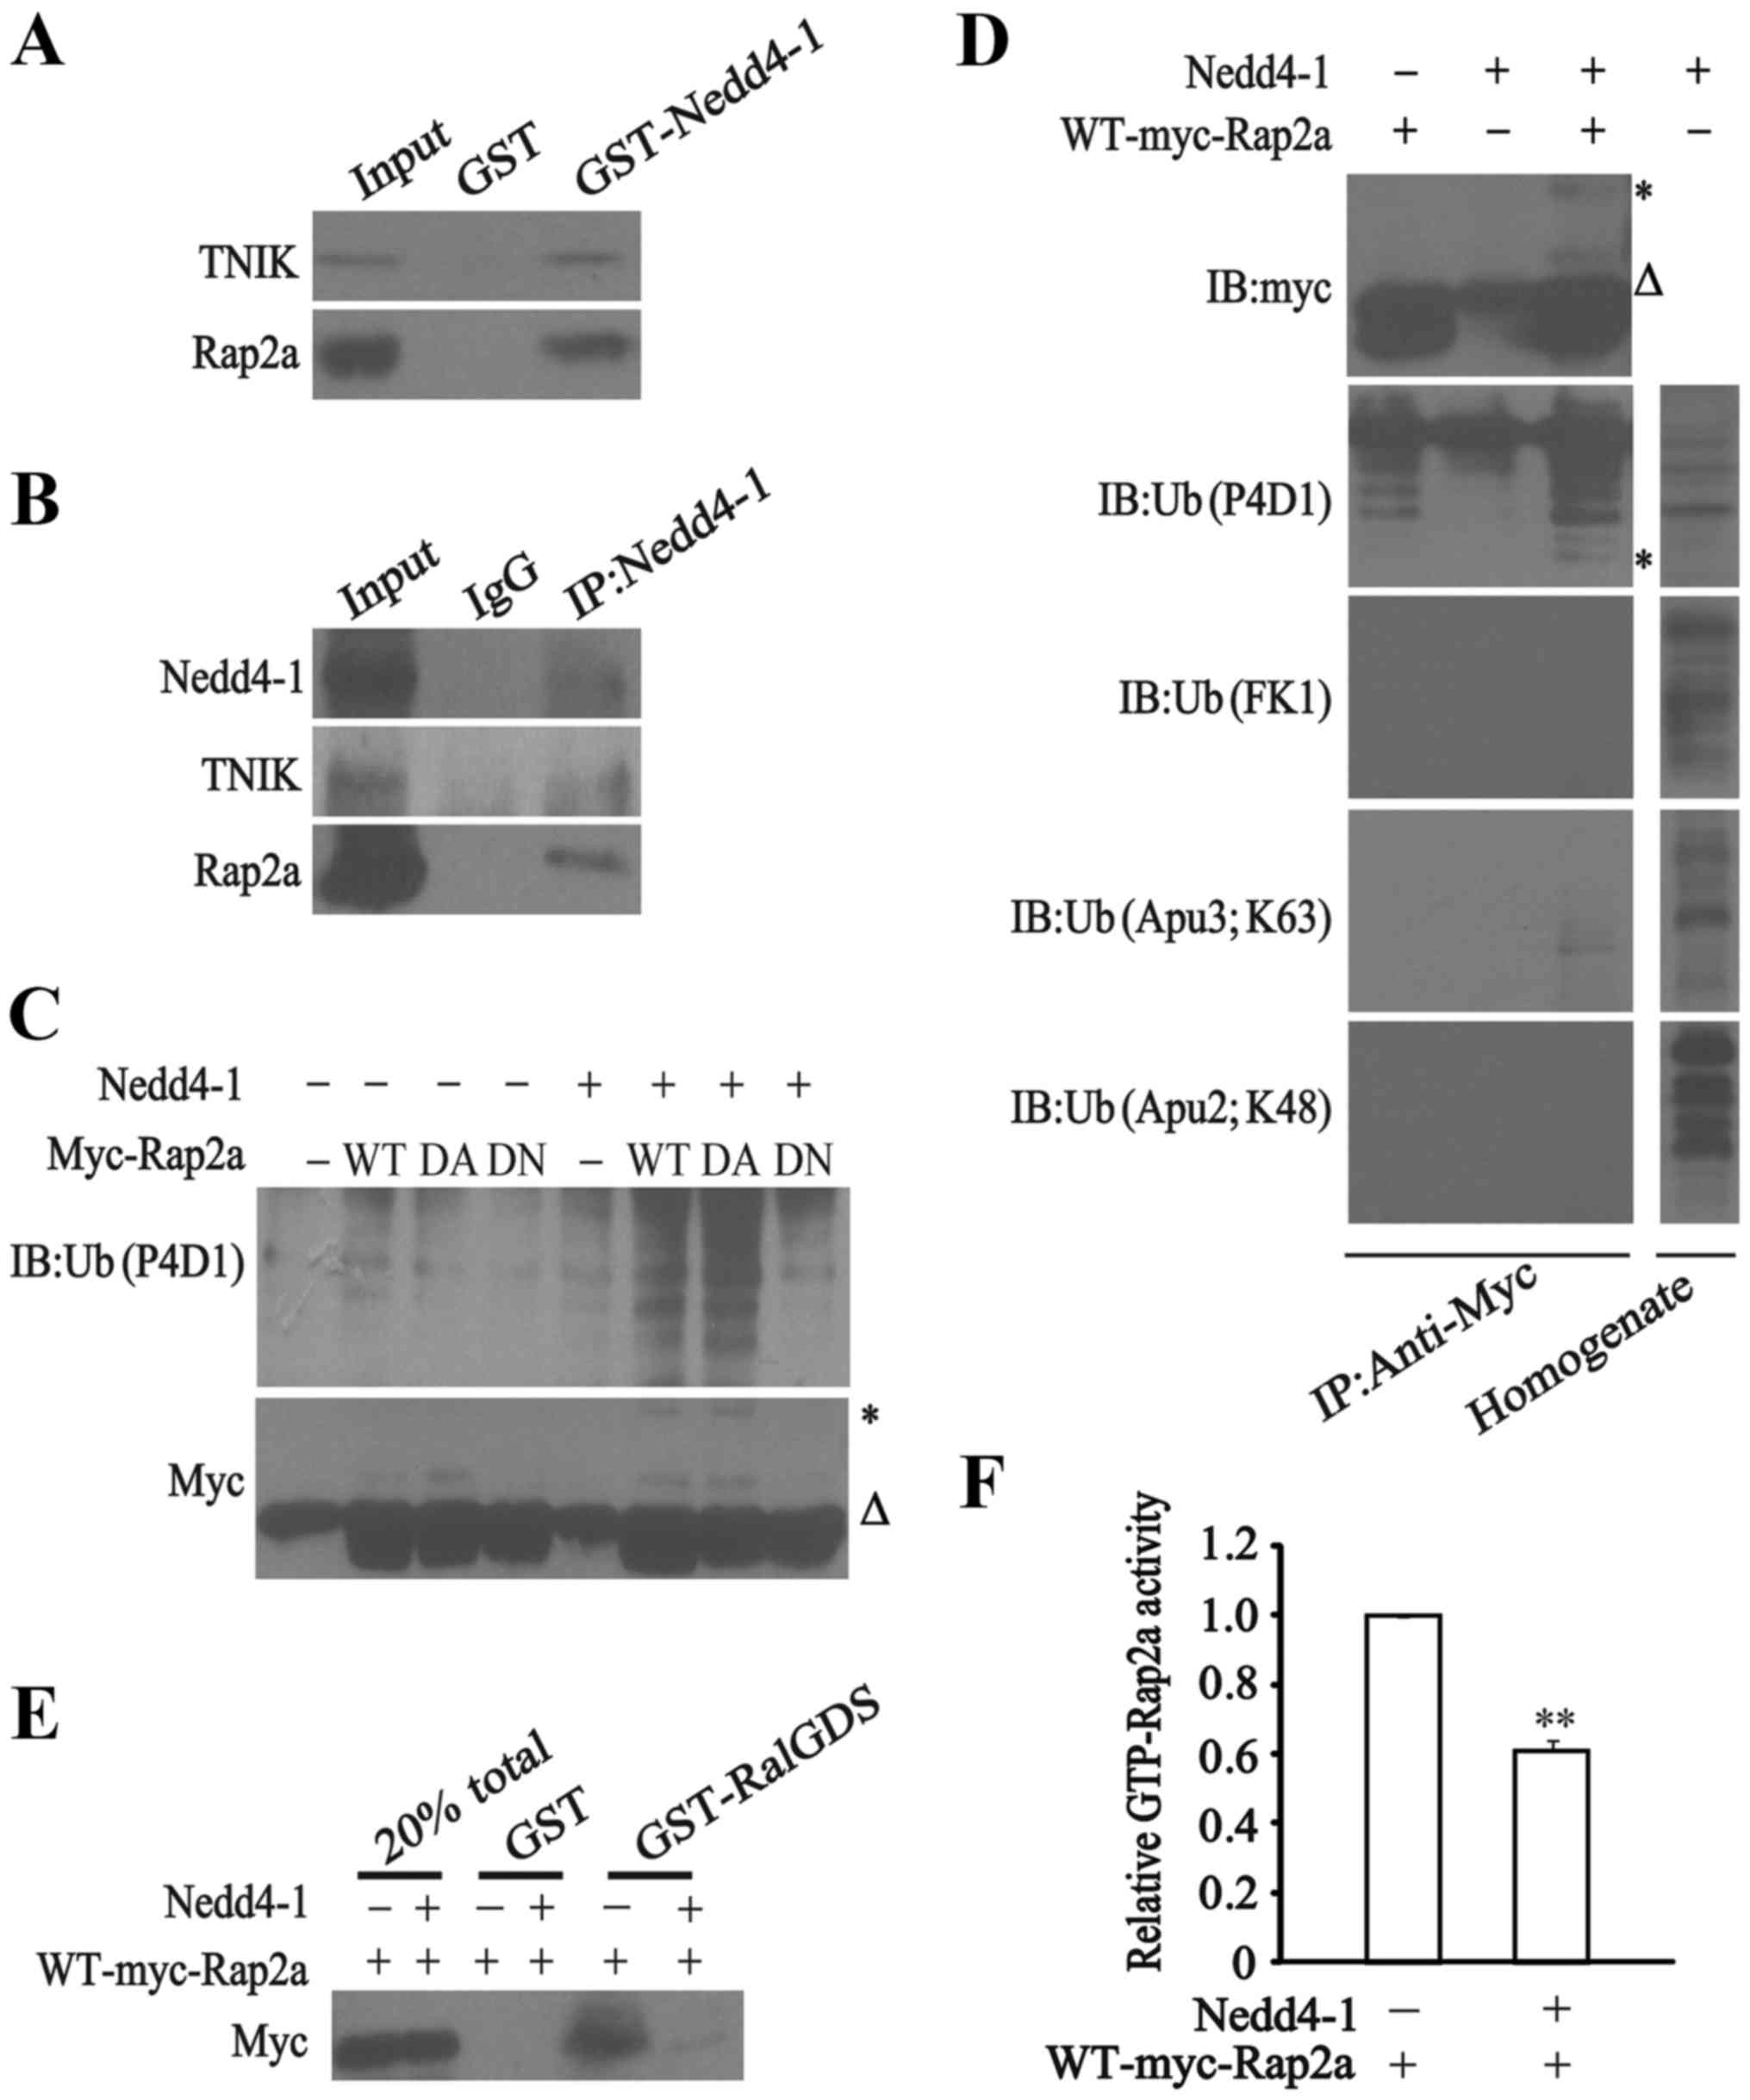 Regulation Of Glioma Migration And Invasion Via Modification Of Rap2a Activity By The Ubiquitin